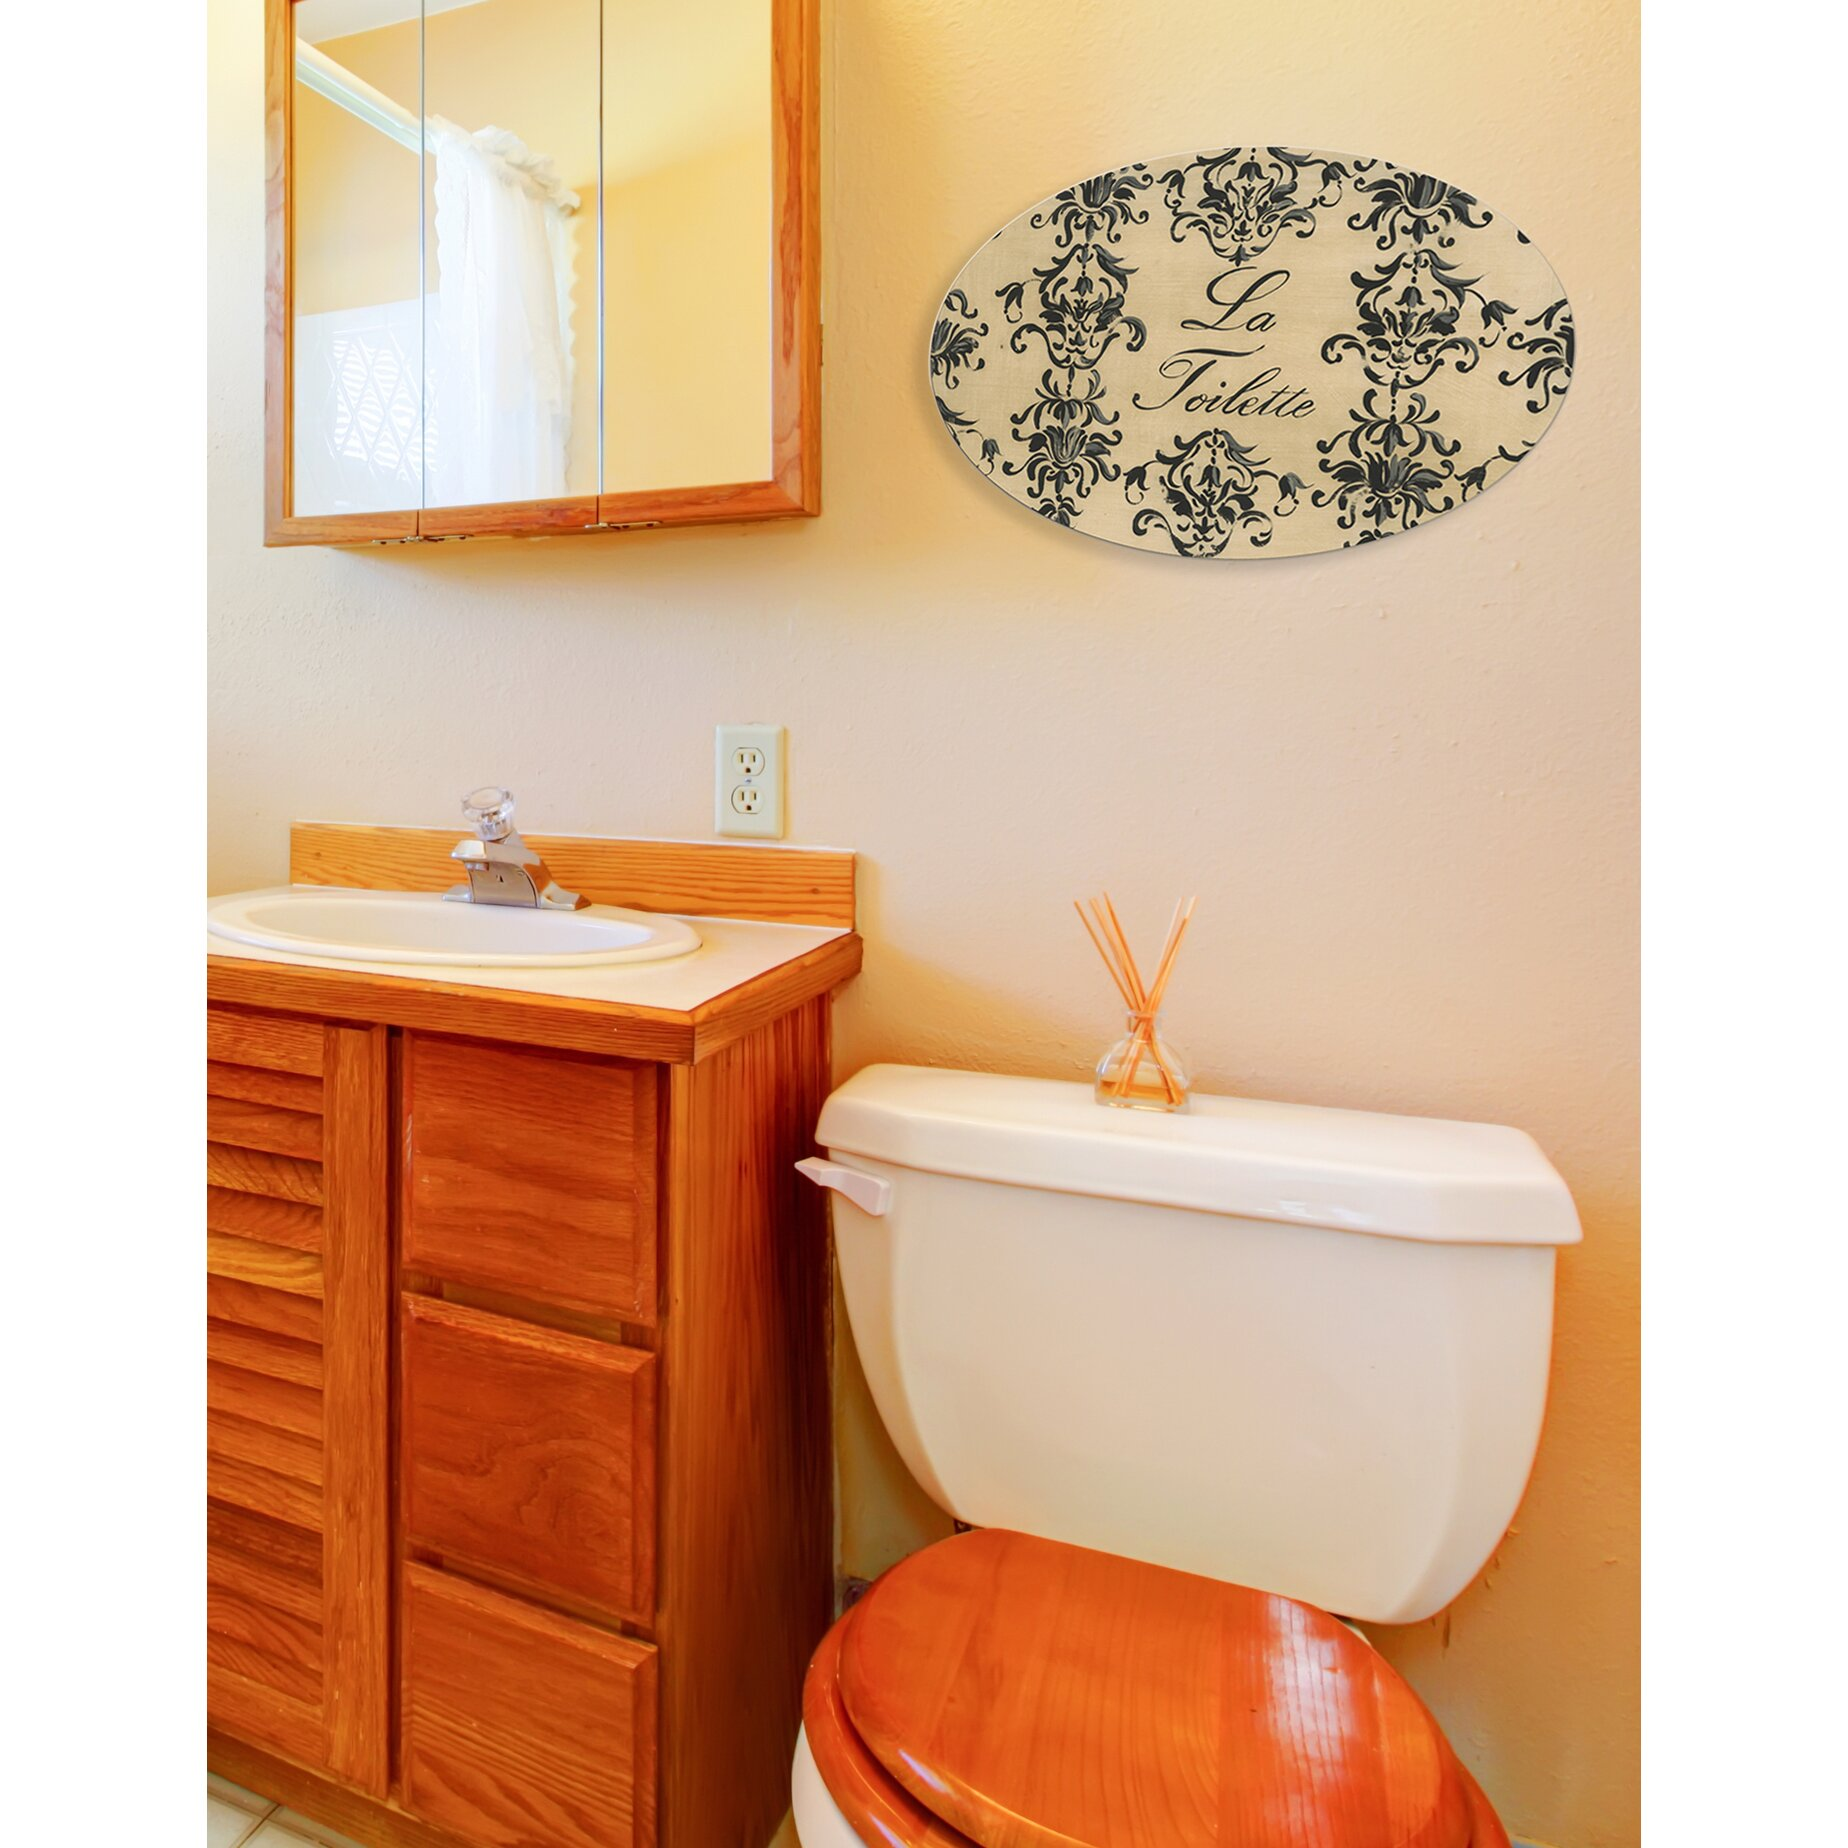 stupell industries toile la toilette oval bathroom wall plaque reviews. Black Bedroom Furniture Sets. Home Design Ideas